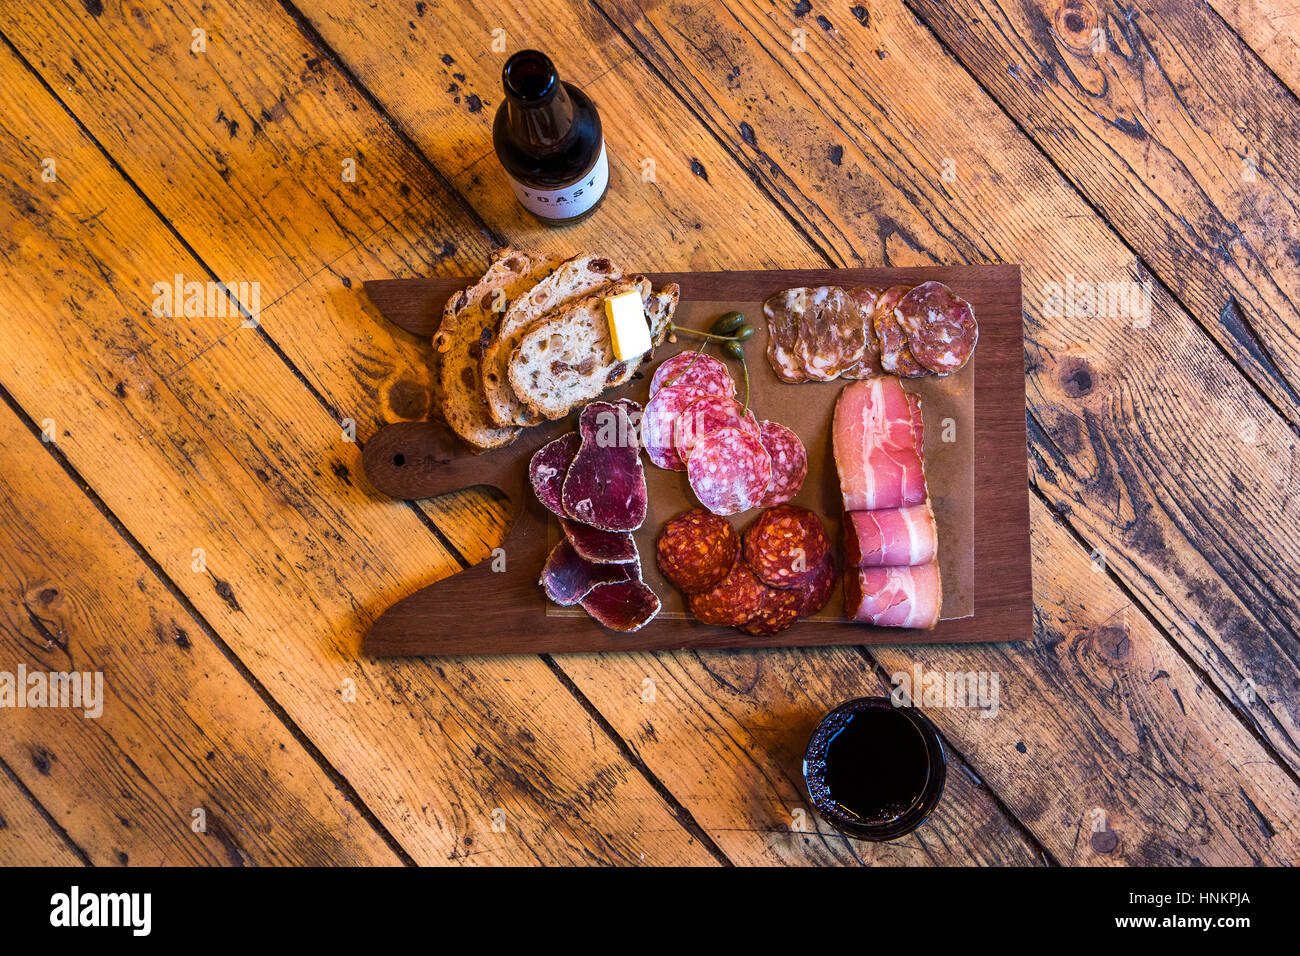 Charcuterie platter with craft beer. Stock Photo